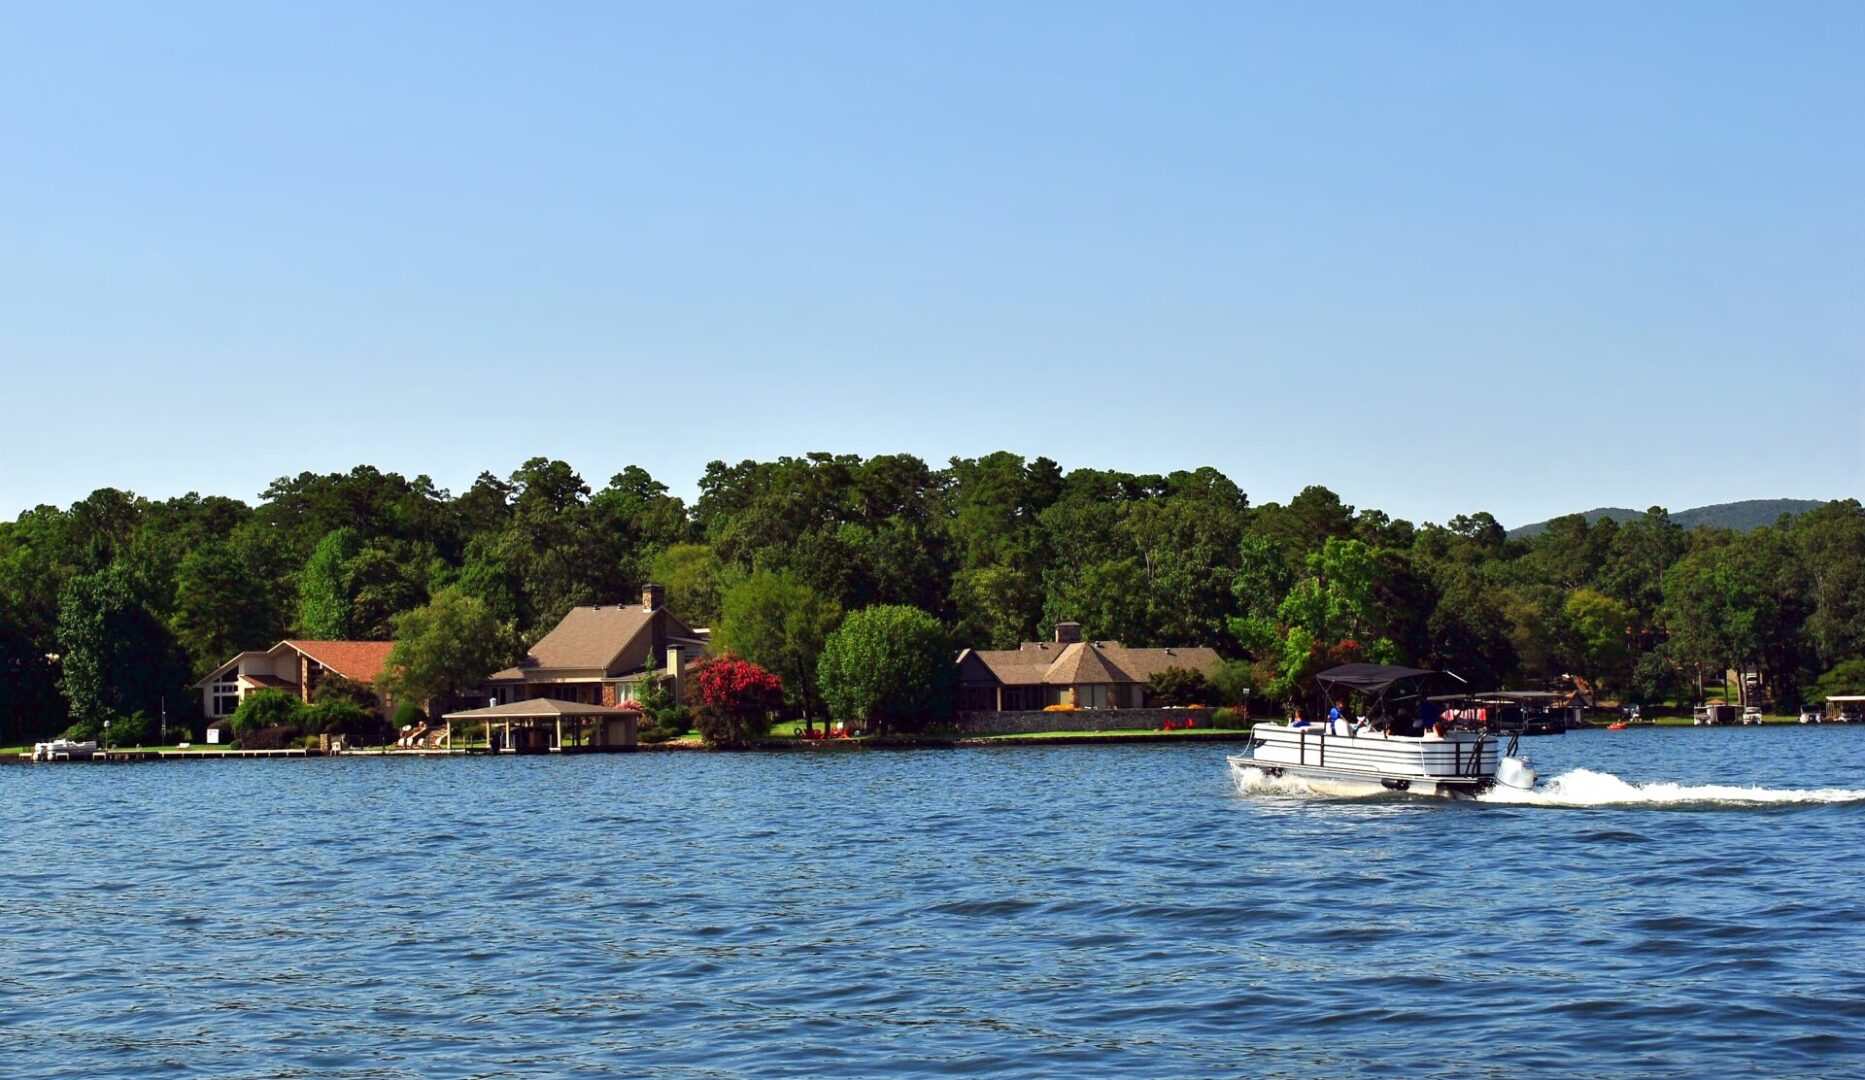 Beautiful scenic view of lake houses on the shoreline with a pontoon boat in the water.